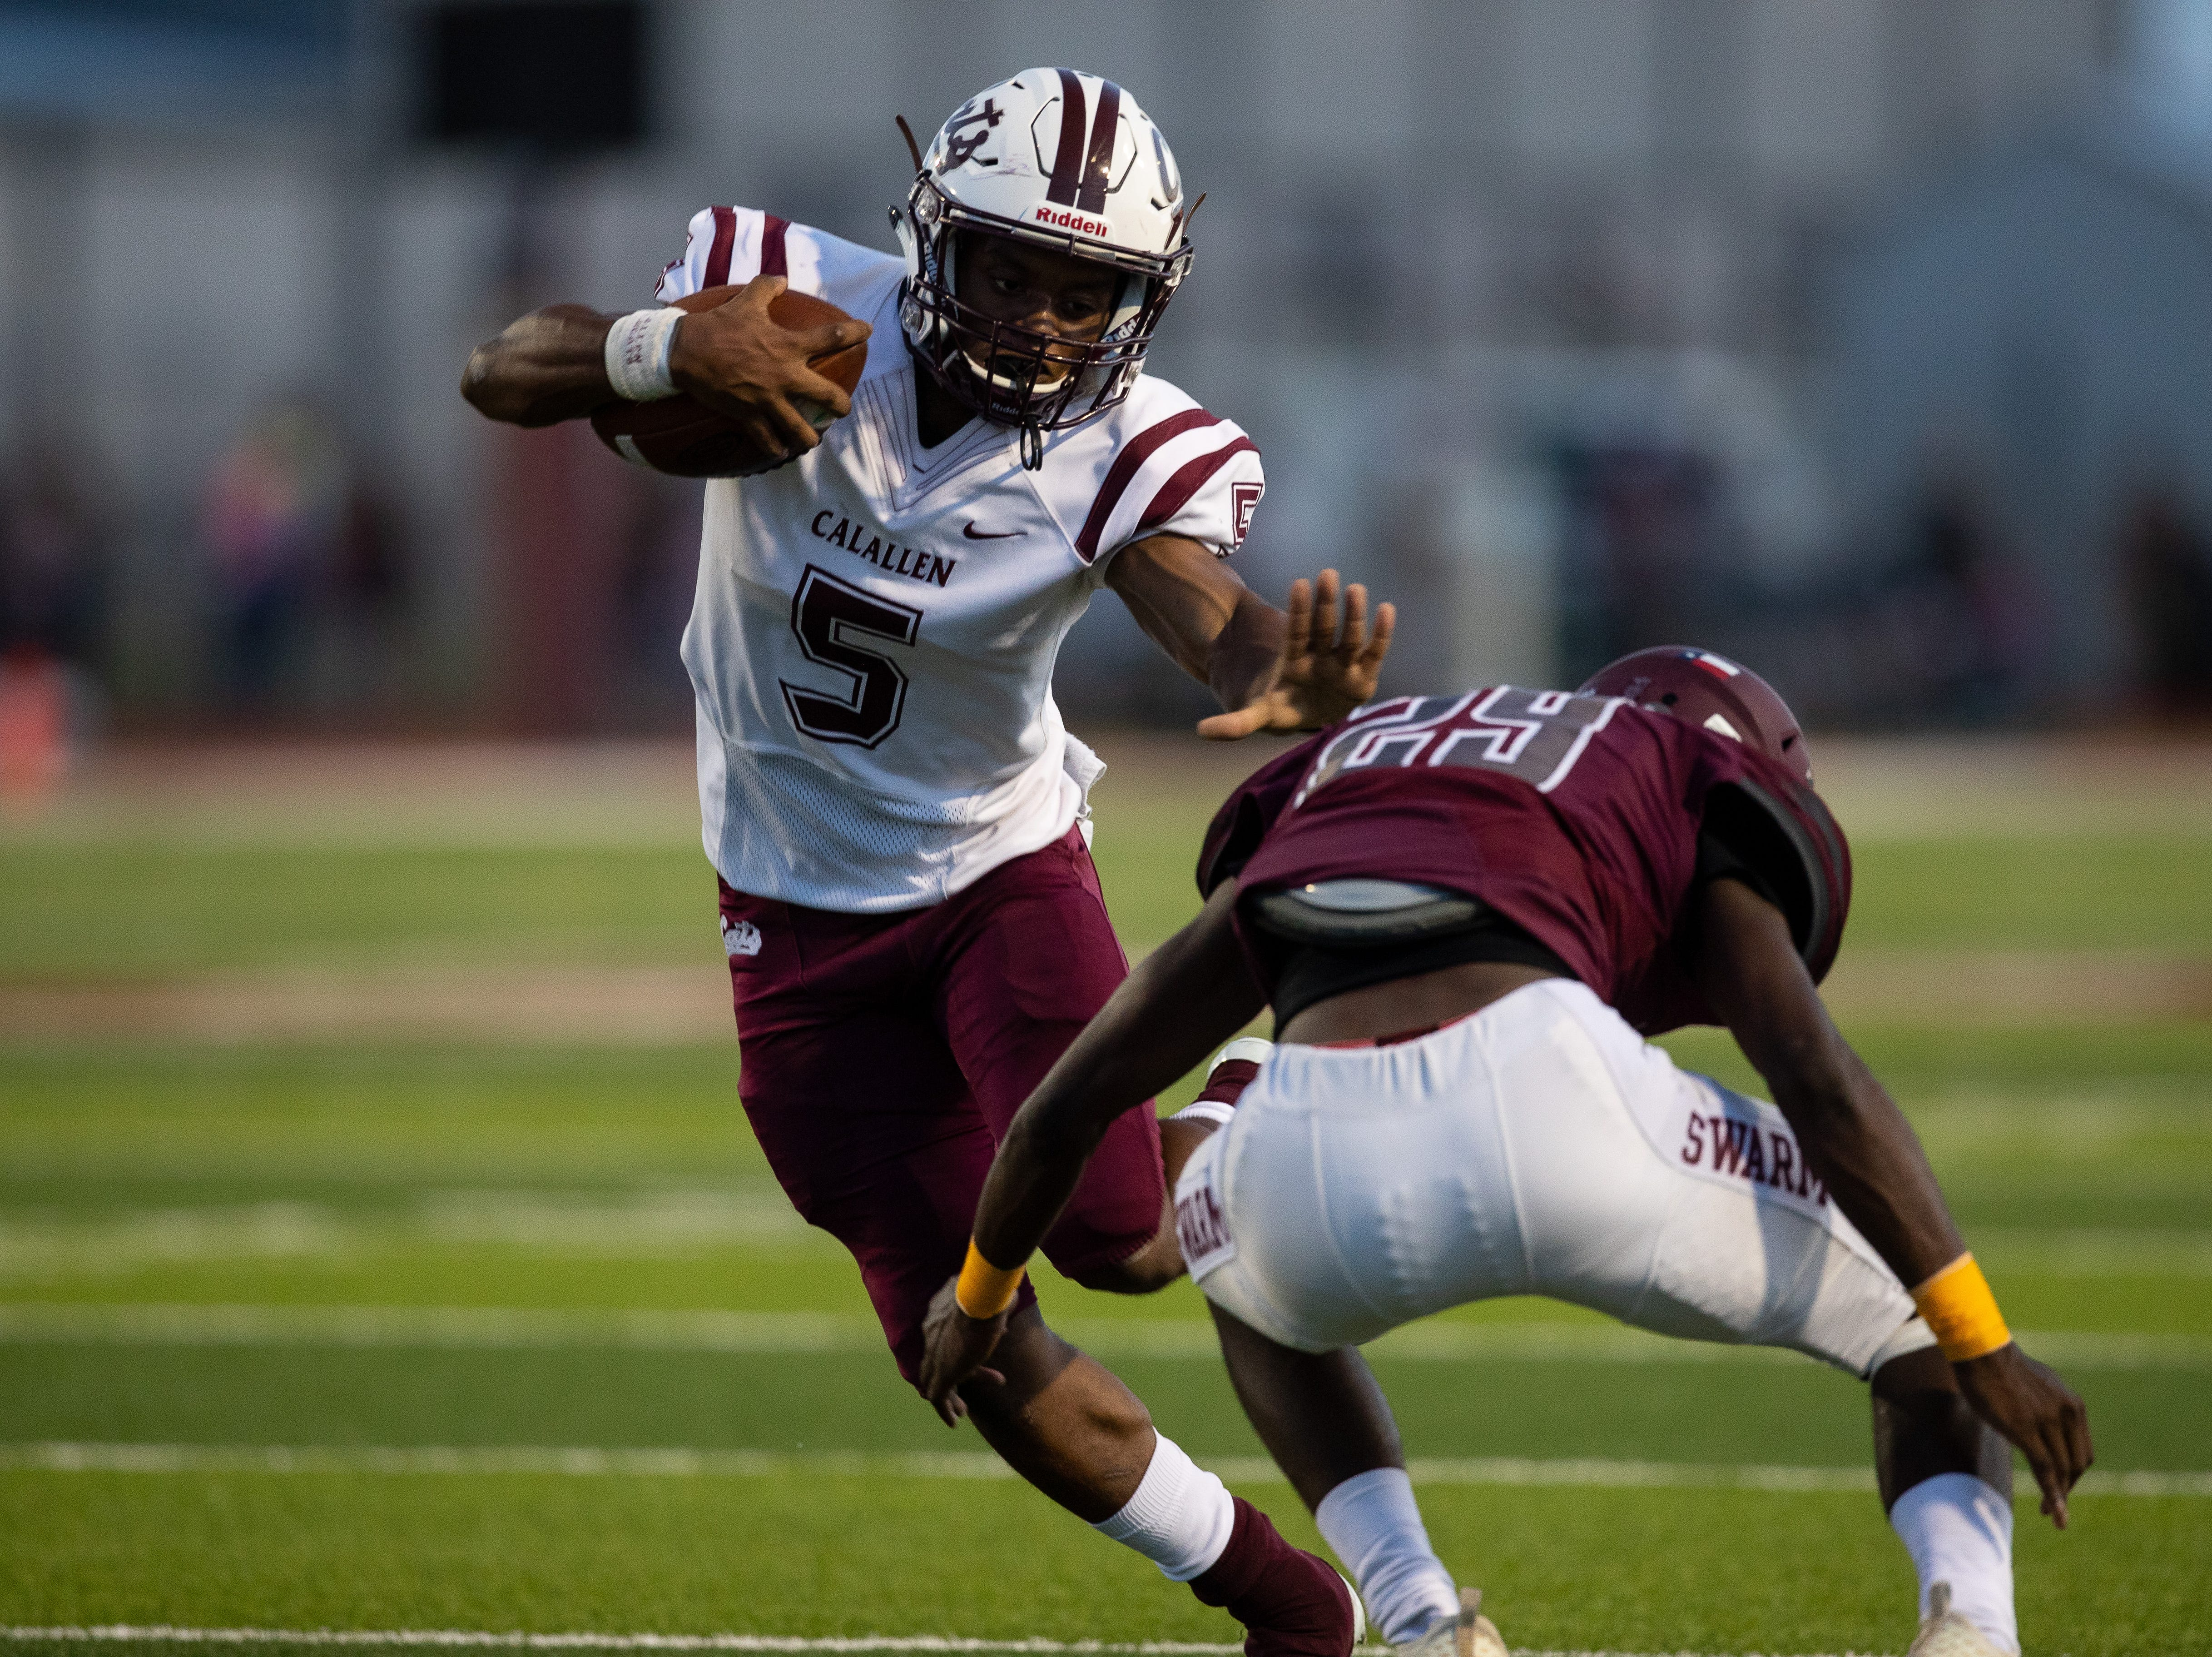 The story behind Calallen's amazing Price brothers football legacy